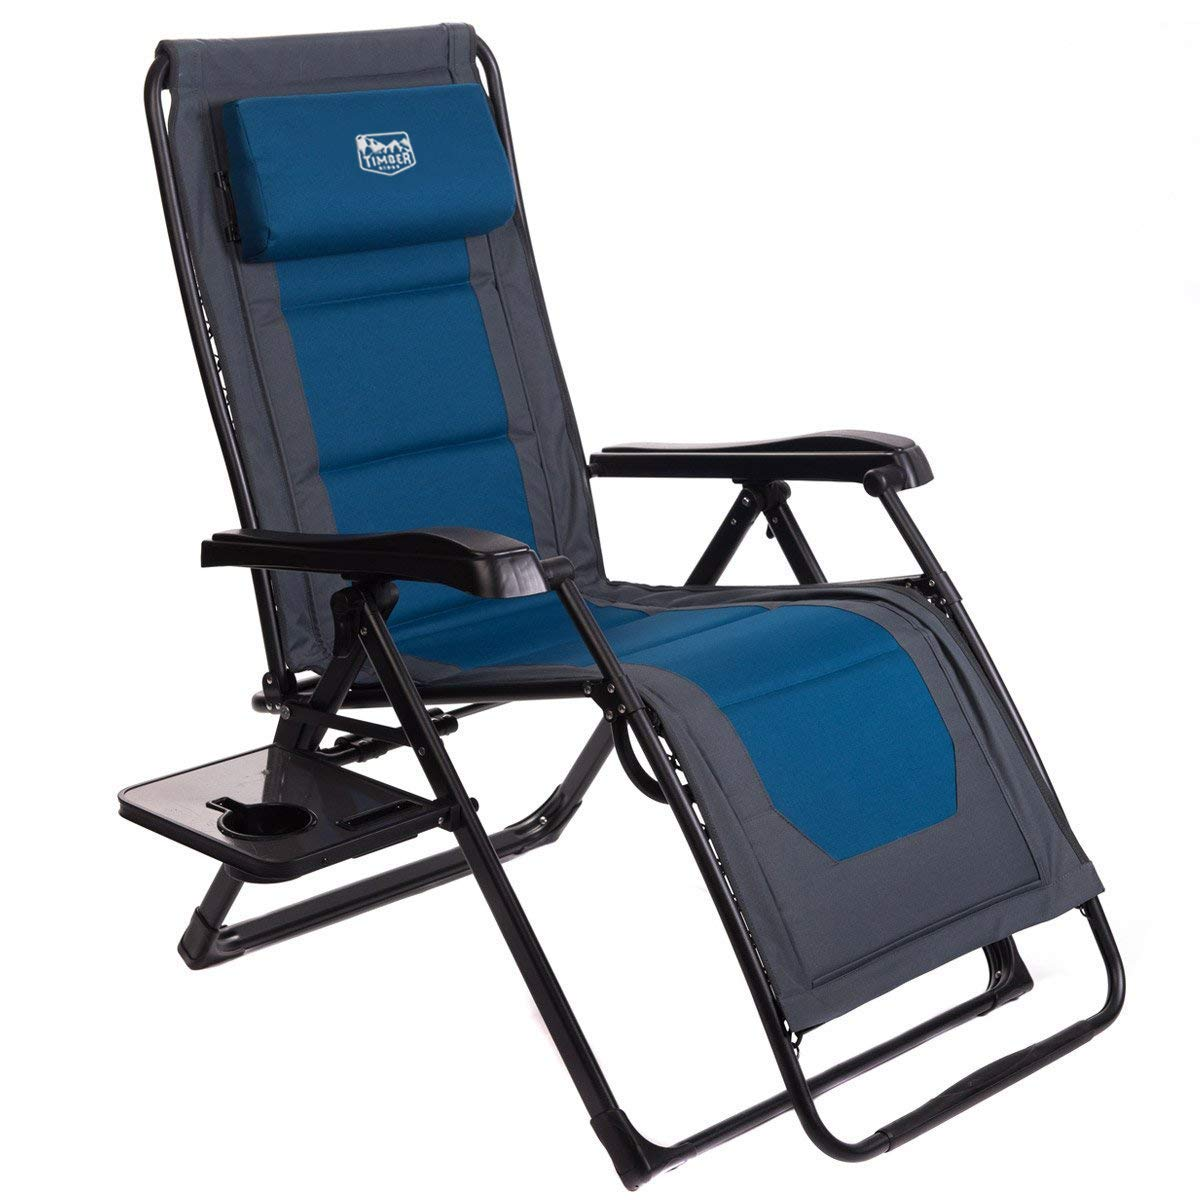 Timber Ridge Zero Gravity Locking Lounge Chair Oversize XL Adjustable Recliner with Headrest for Outdoor Beach Patio Pool Support 350lbs by Timber Ridge (Image #1)